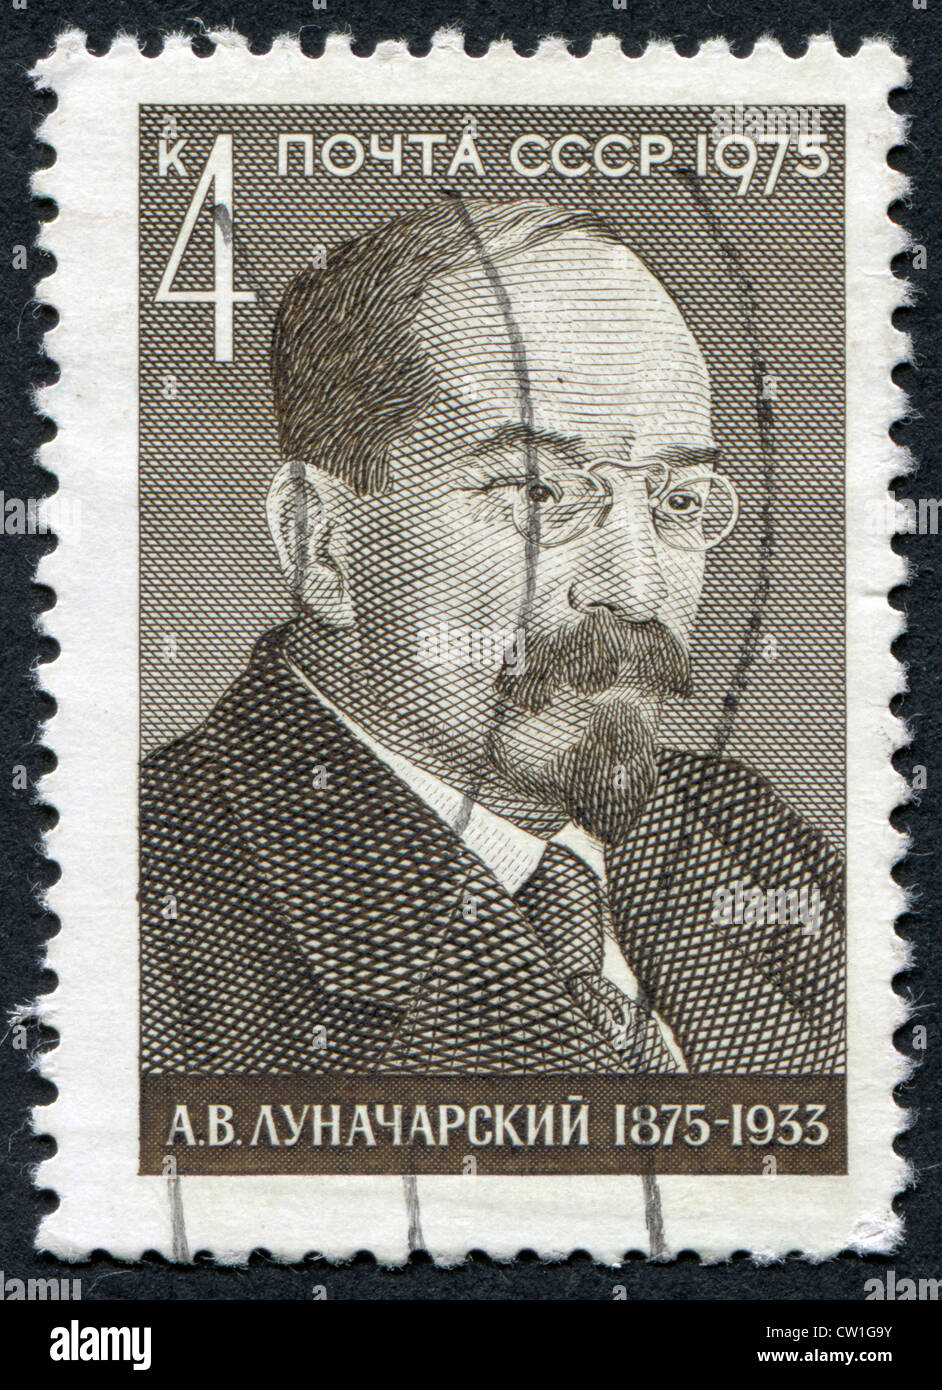 1975 in the USSR 40